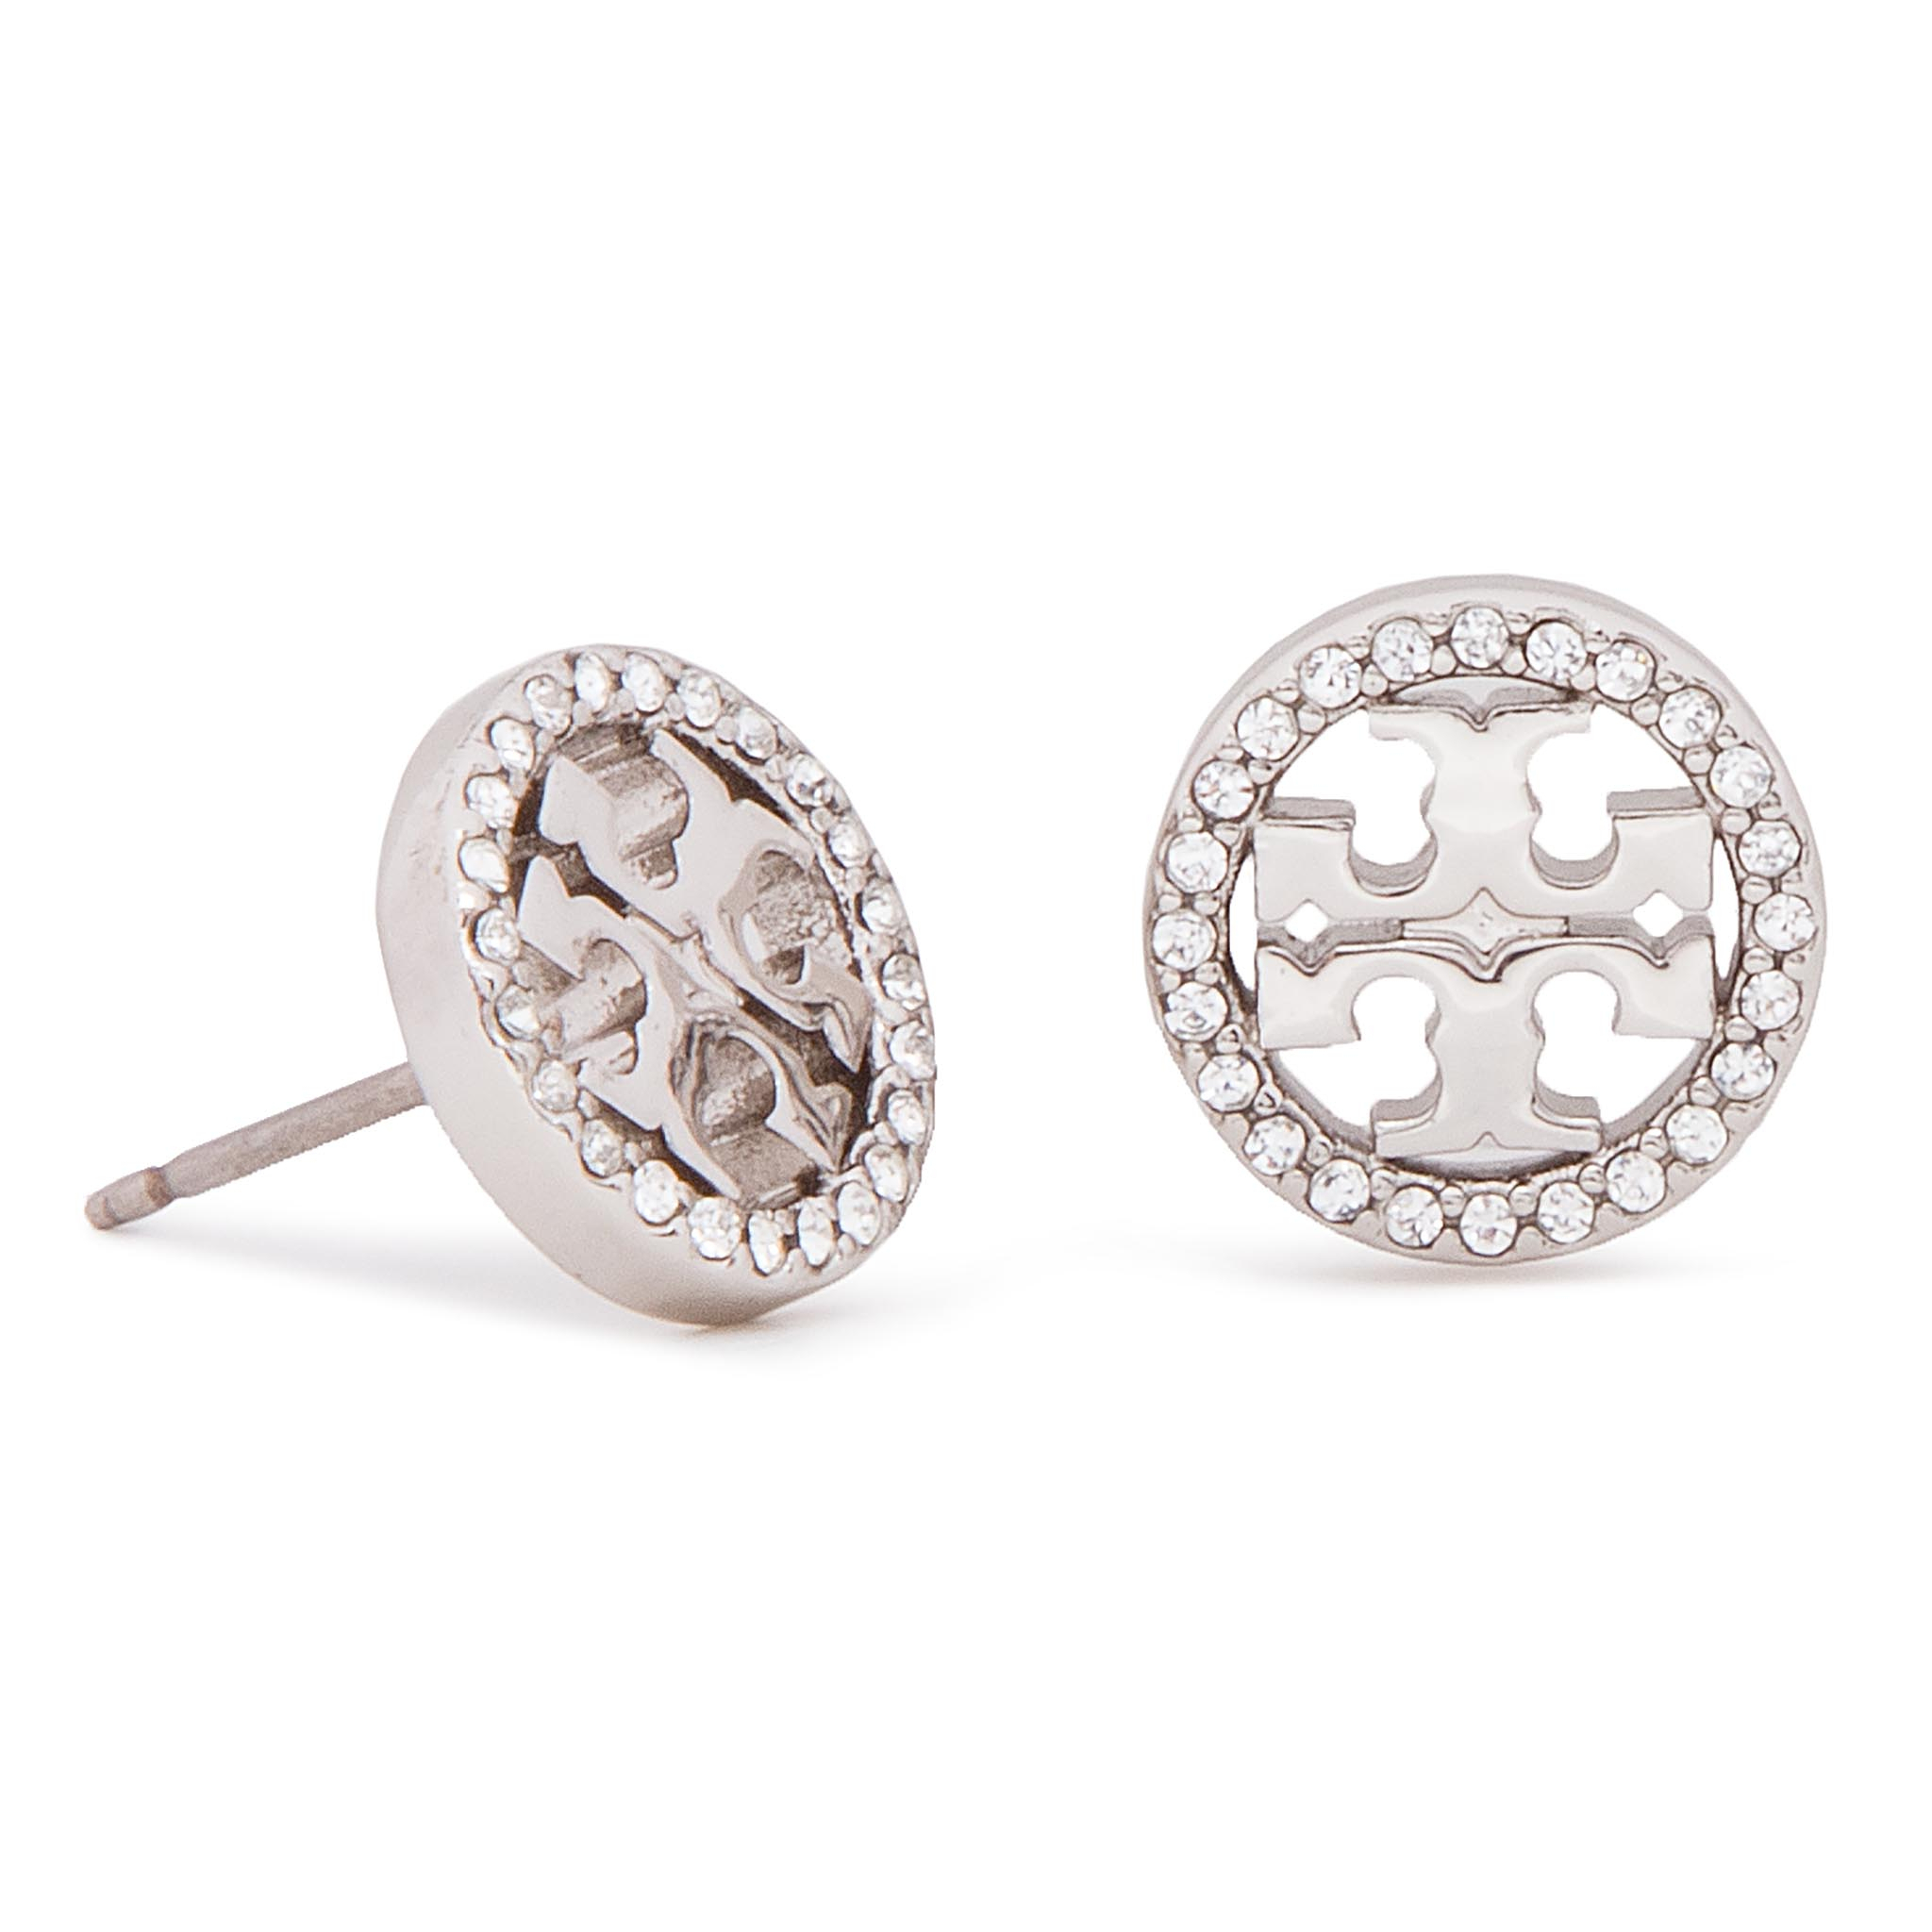 Boucles d'oreilles TORY BURCH - Crystal Logo Circle Stud Earring 53422 Tory Silver/Crystal 042